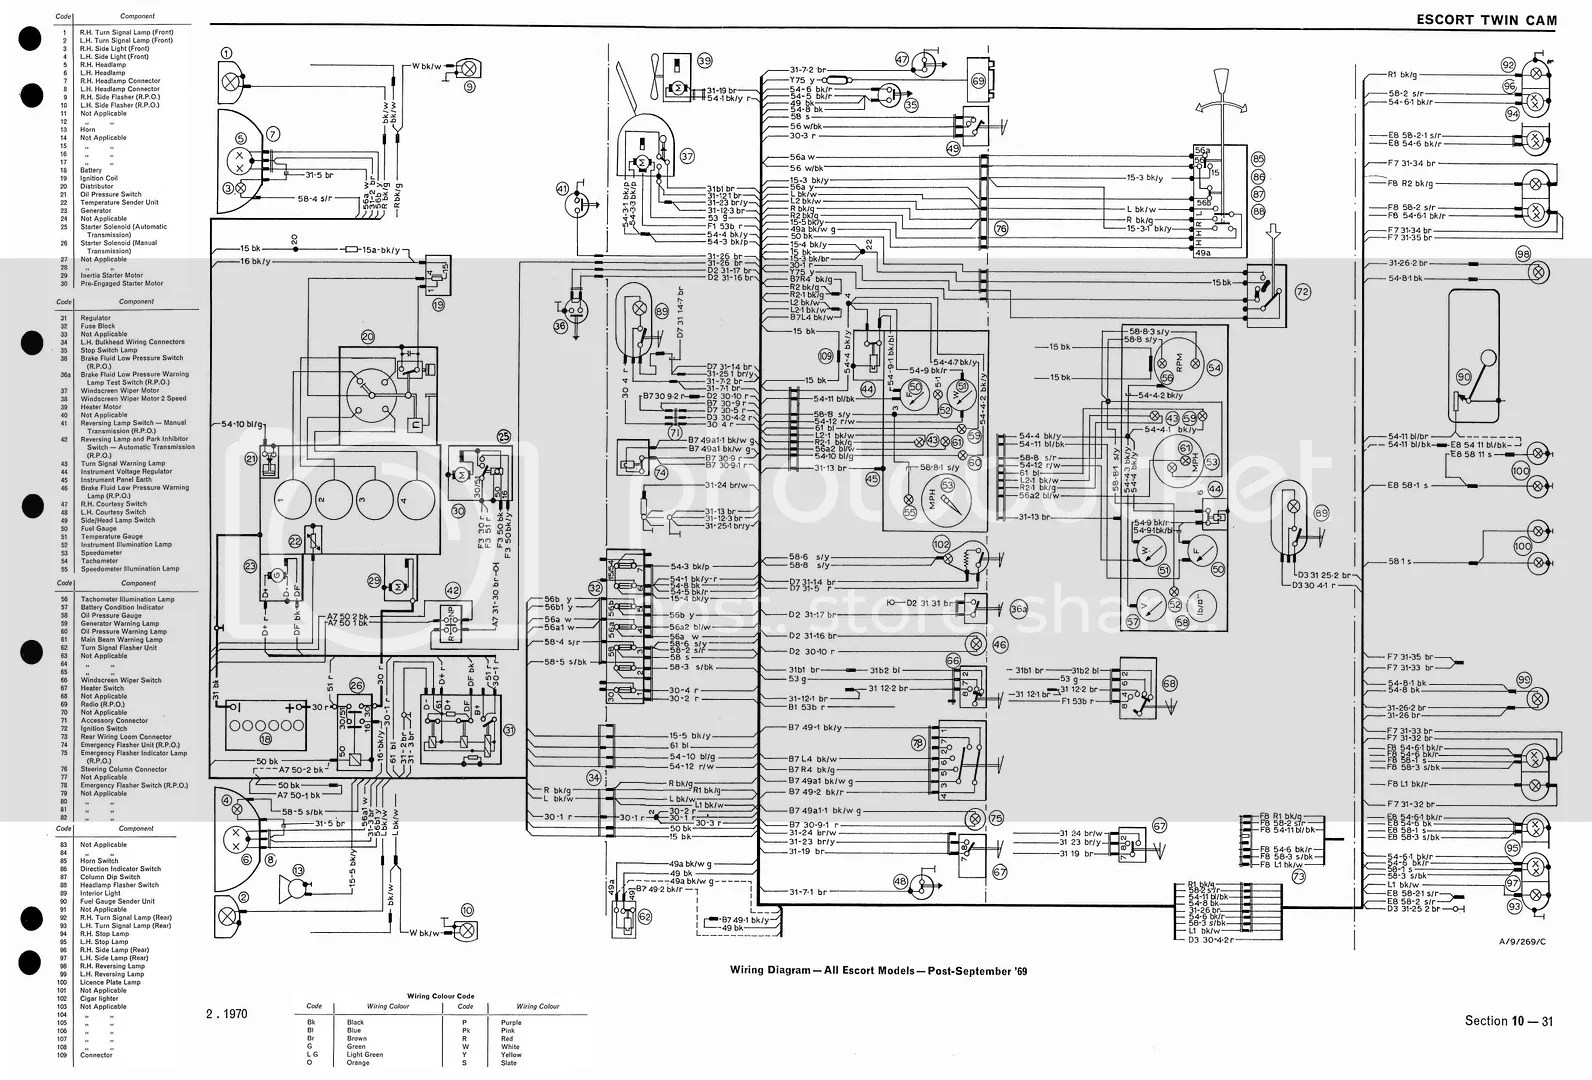 Fiat 500 Fuse Box Location Fiat Wiring Diagram Images